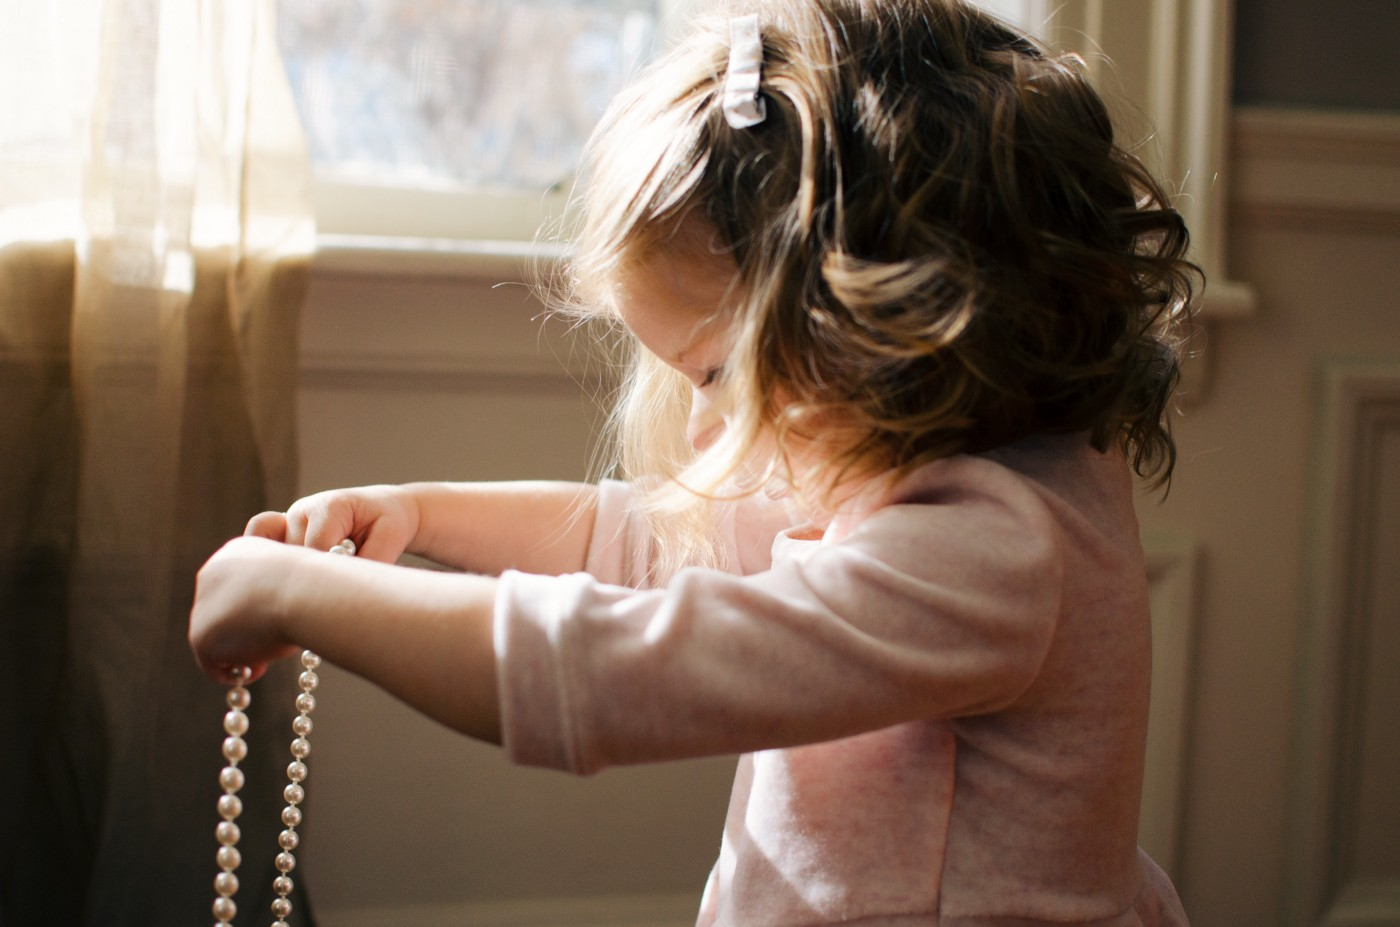 A side-view of a little girl, barely the height of the windowsill, wearing a pink dress holding out a string of pearls as if determining to put them around her neck. Her hair short and wavy but maturely coiffed like a woman's but with a barrette. A representative photo of a girl growing up too fast against more idealistic fashion.